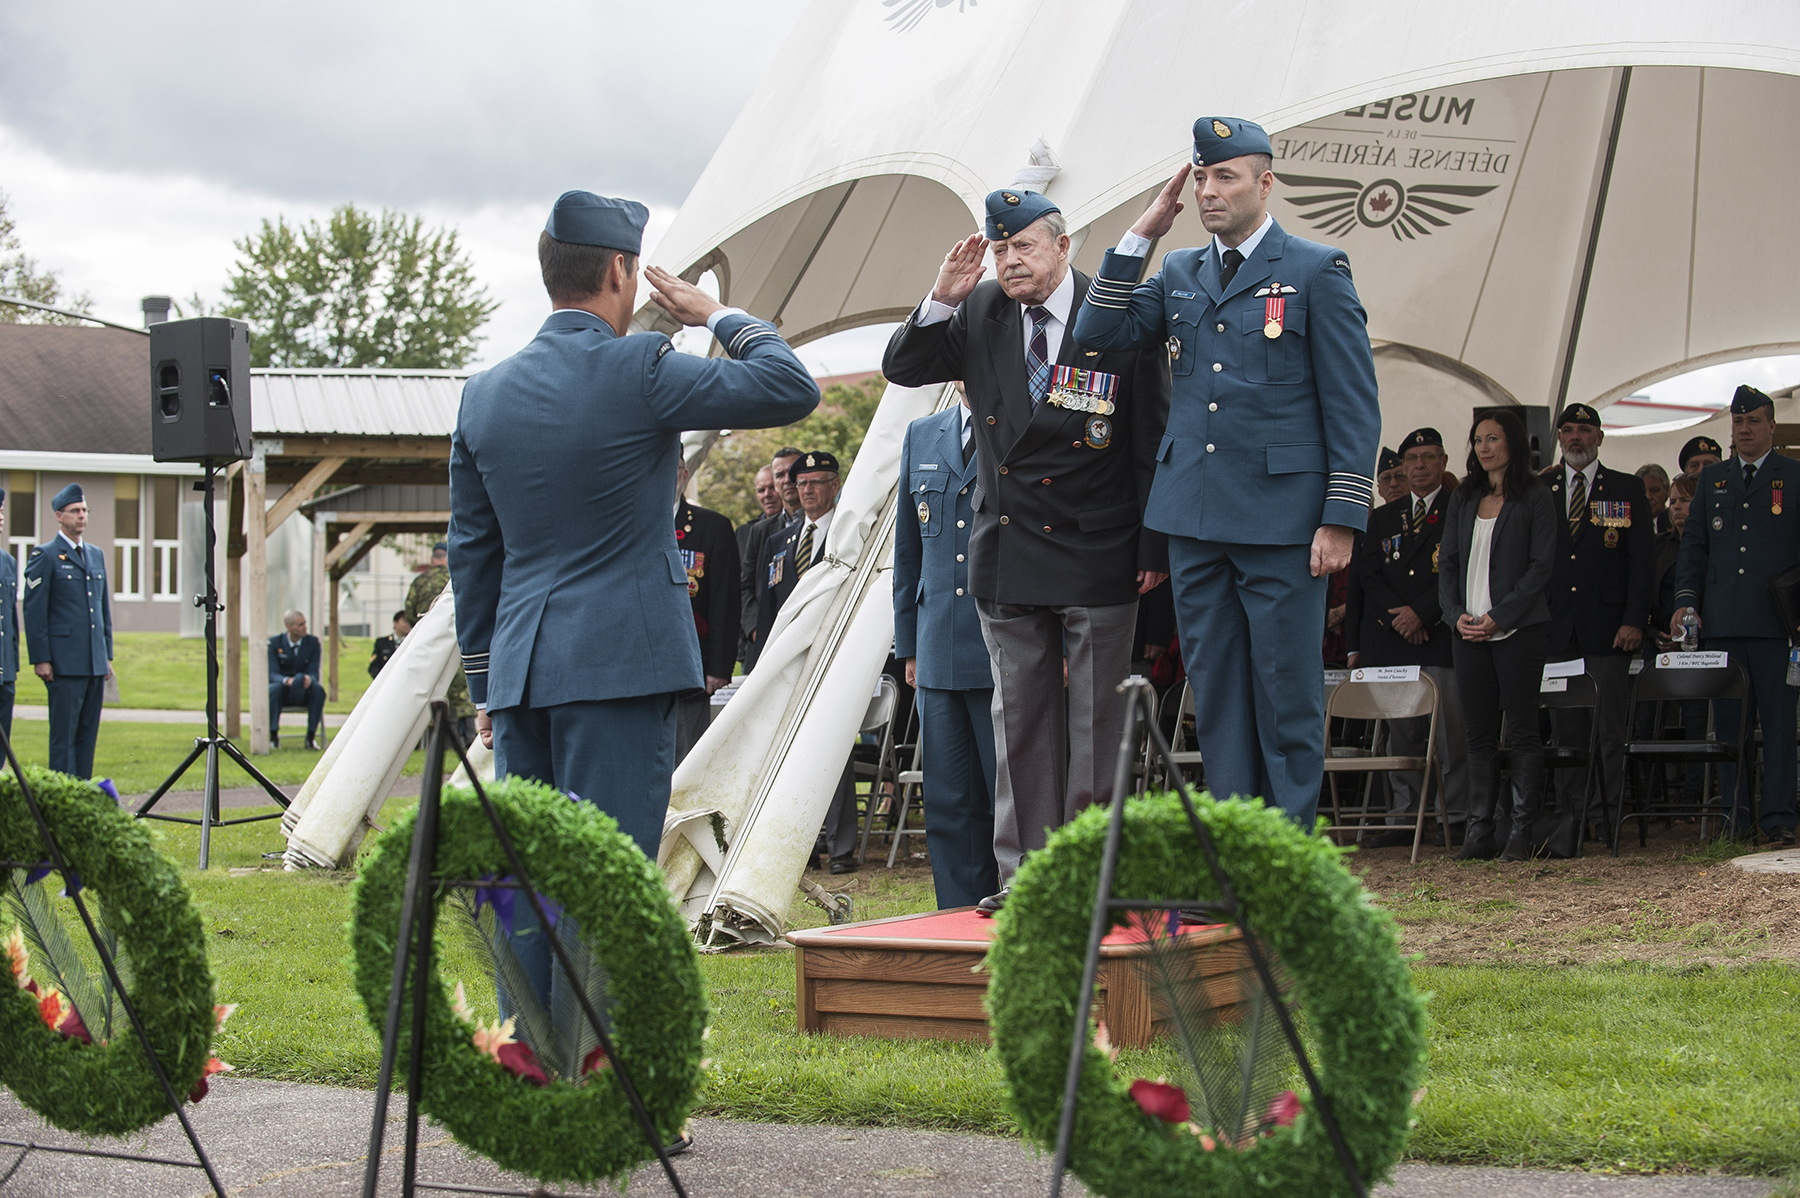 Second World War Halifax bomber pilot Jean Cauchy and Colonel Darcy Molstad, commander of Canadian Forces Base Bagotville, Quebec, return the salute during the Bagotville ceremony marking the 76th anniversary of the Battle of Britain held on September 18, 2016. PHOTO: Corporal Gary Calvé, BN07-2016-0498-005